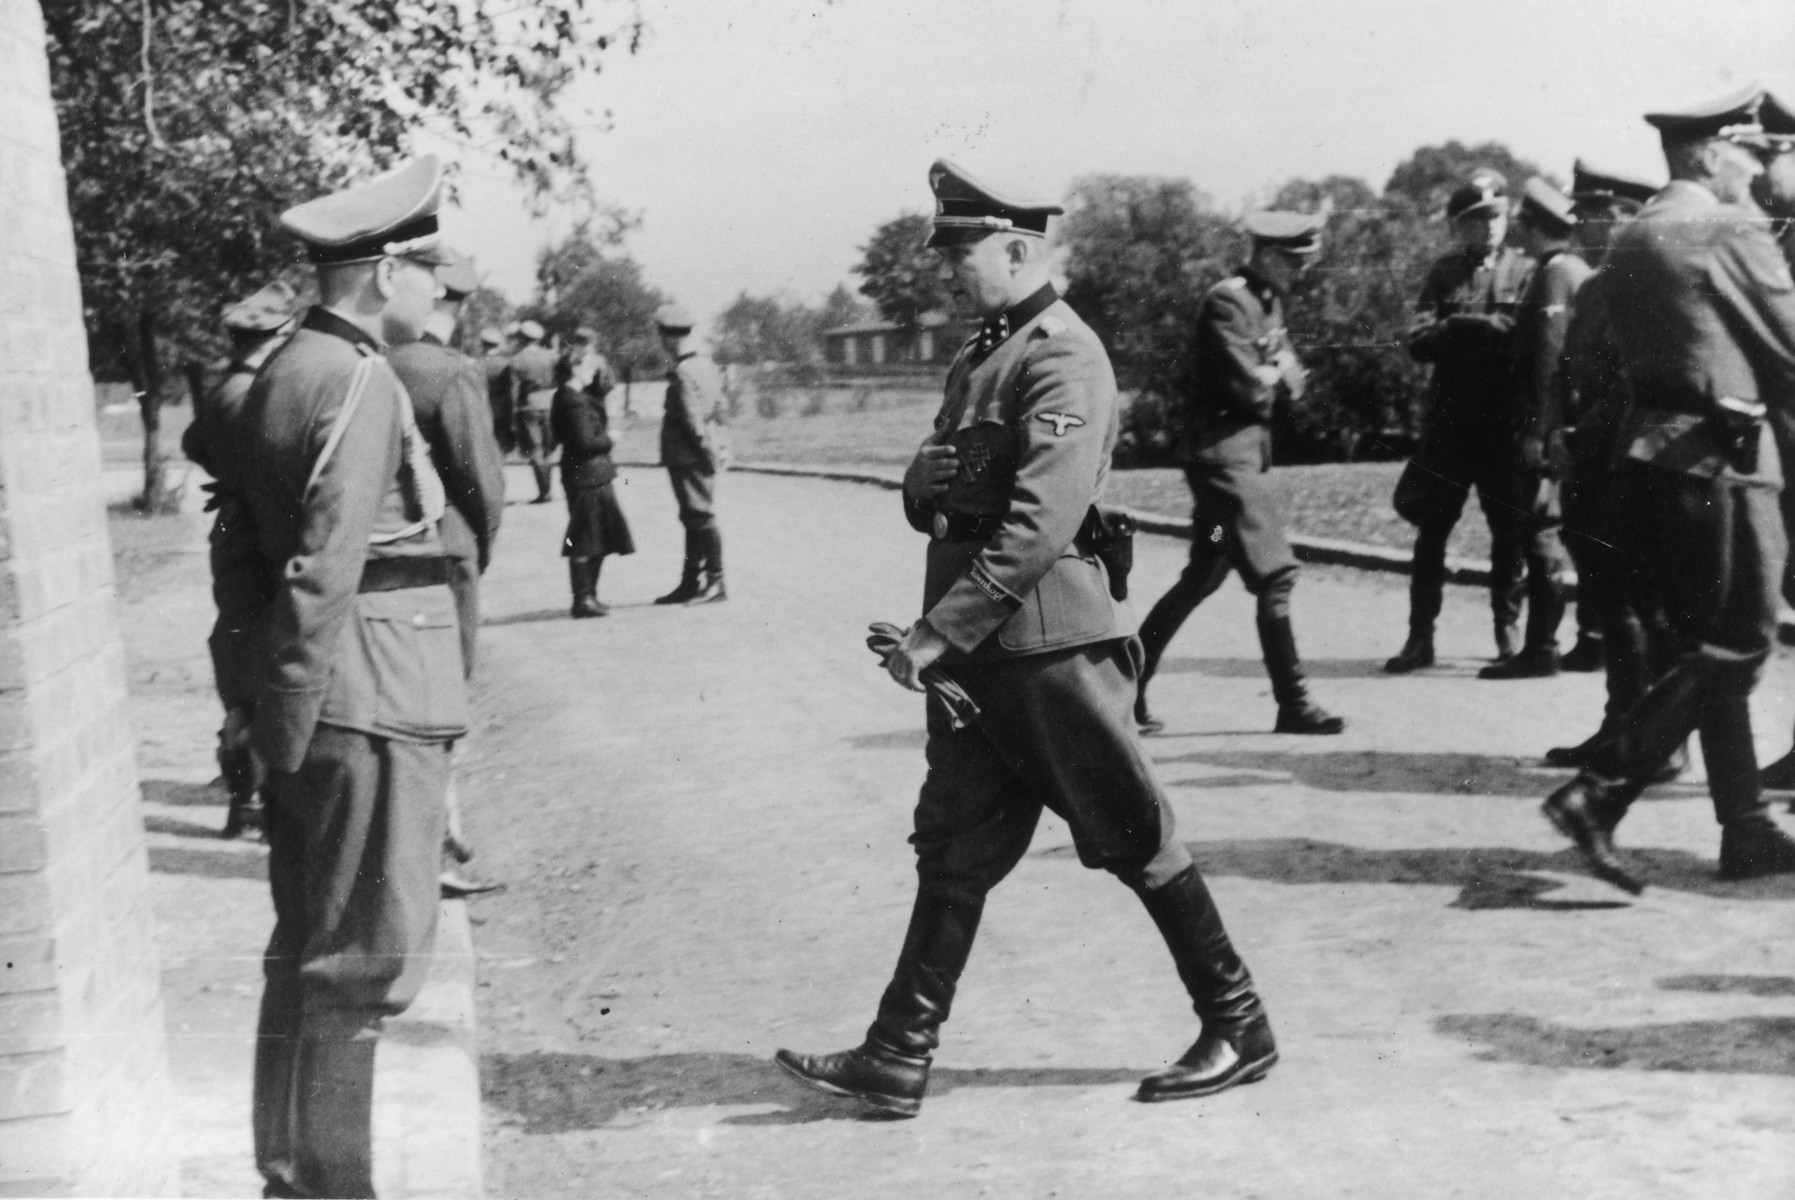 SS officers gather for the dedication ceremonies of the new SS hospital.  Commandant Richard Baer is walking towards Karl Hoecker (left).